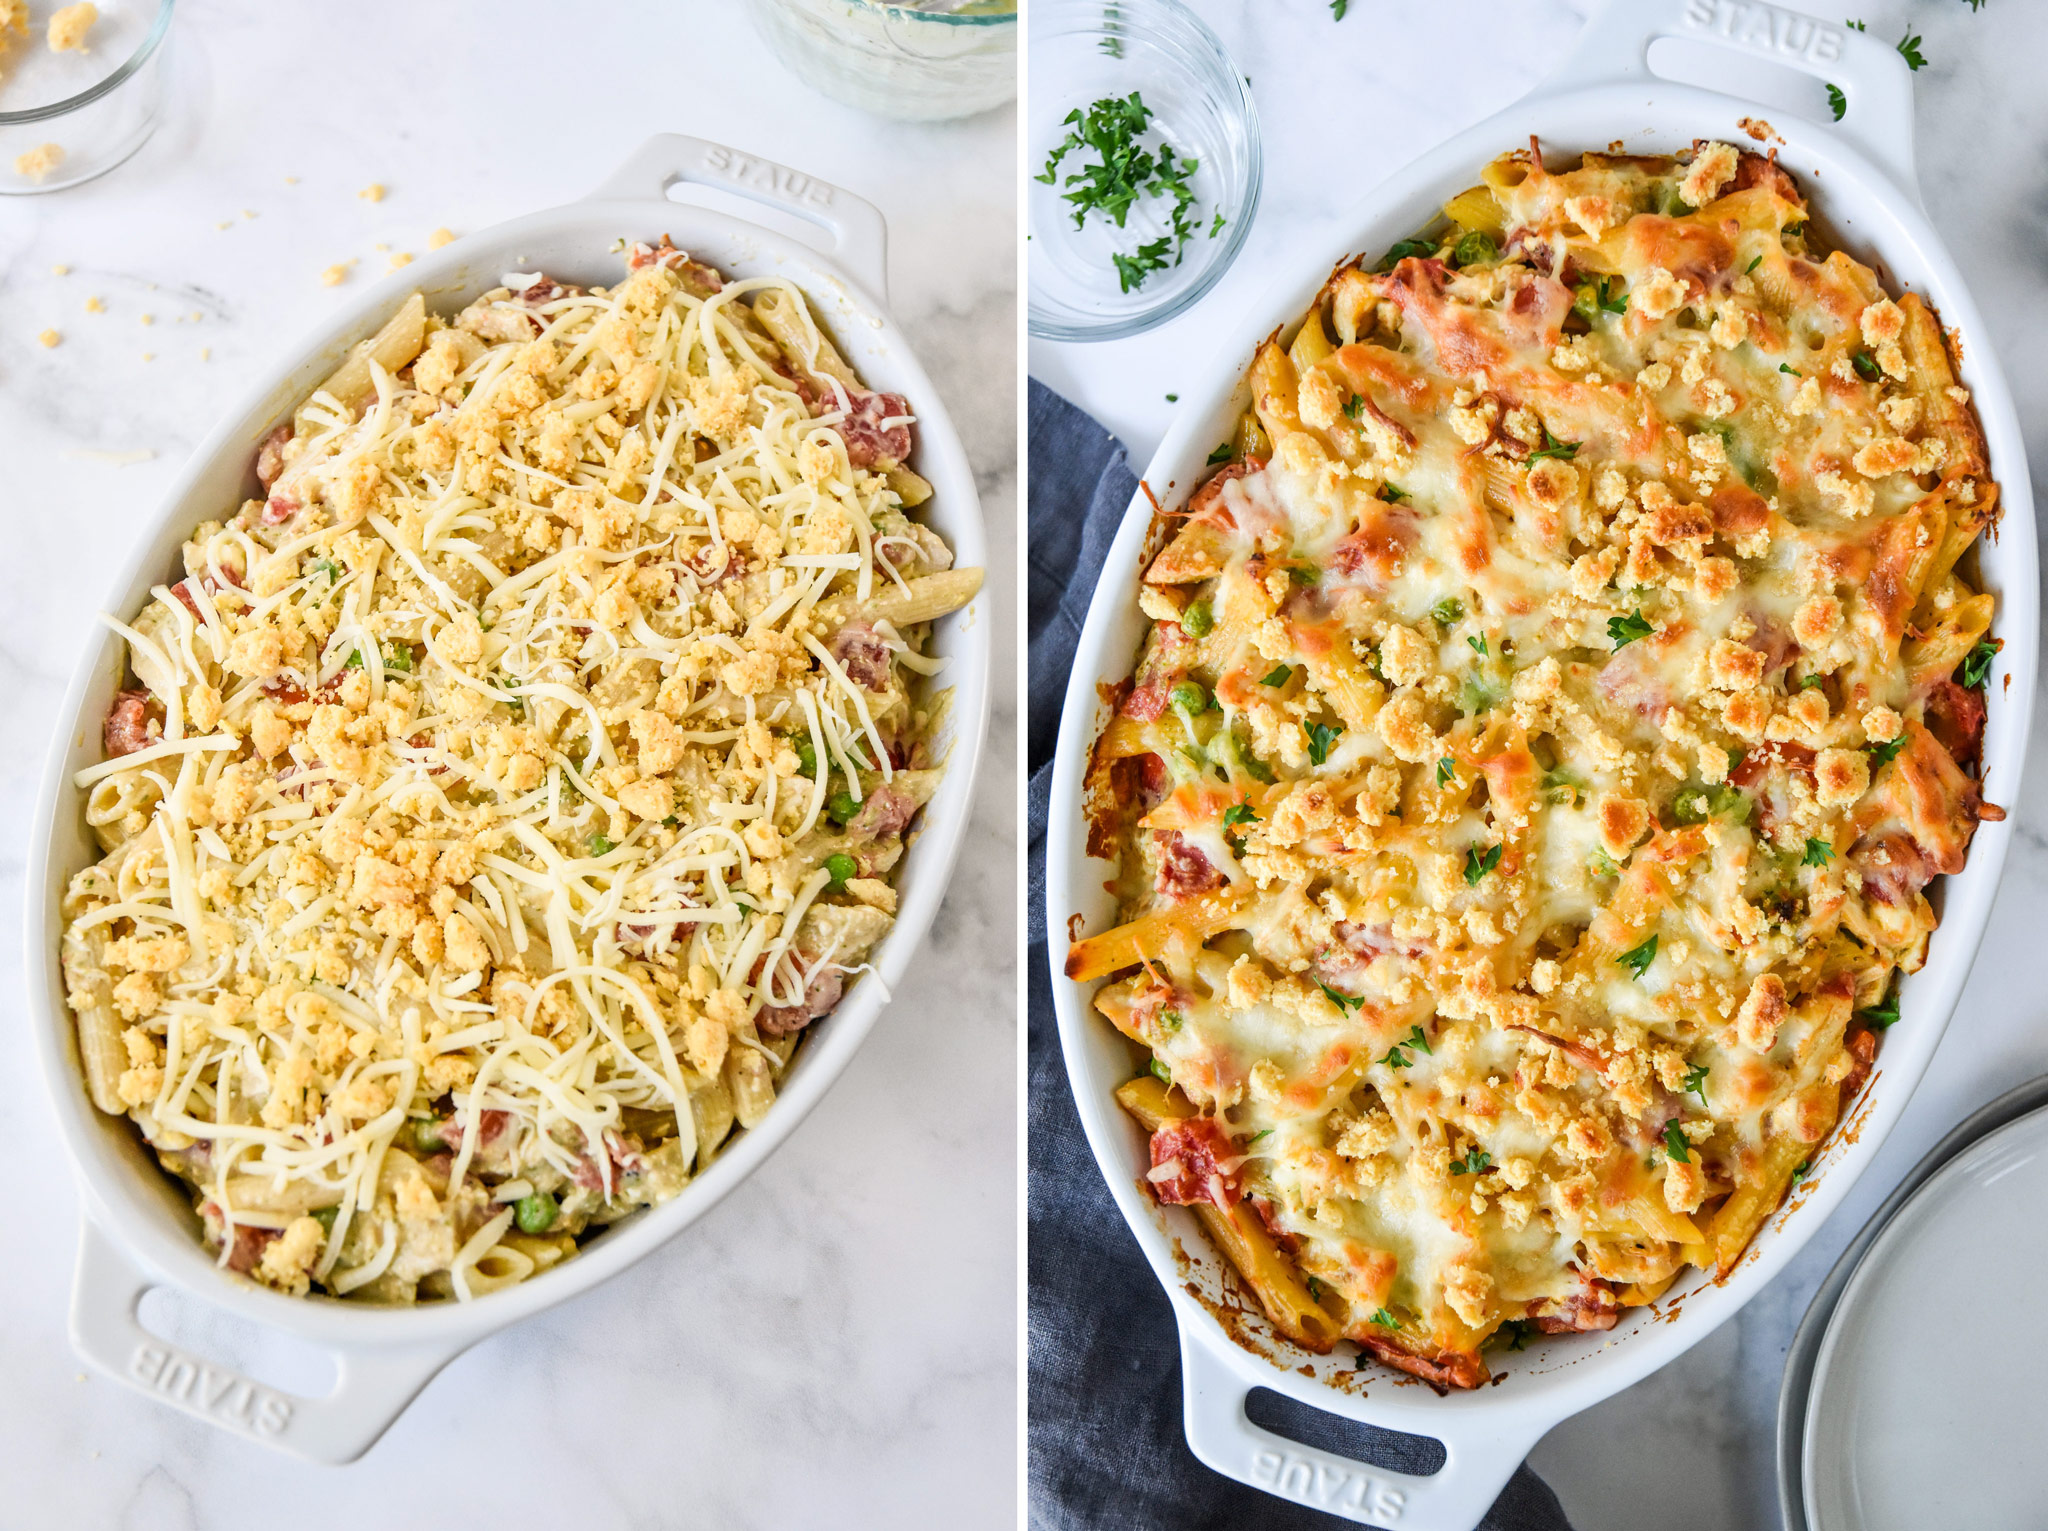 before and after baking the creamy pesto pasta chicken bake dish.